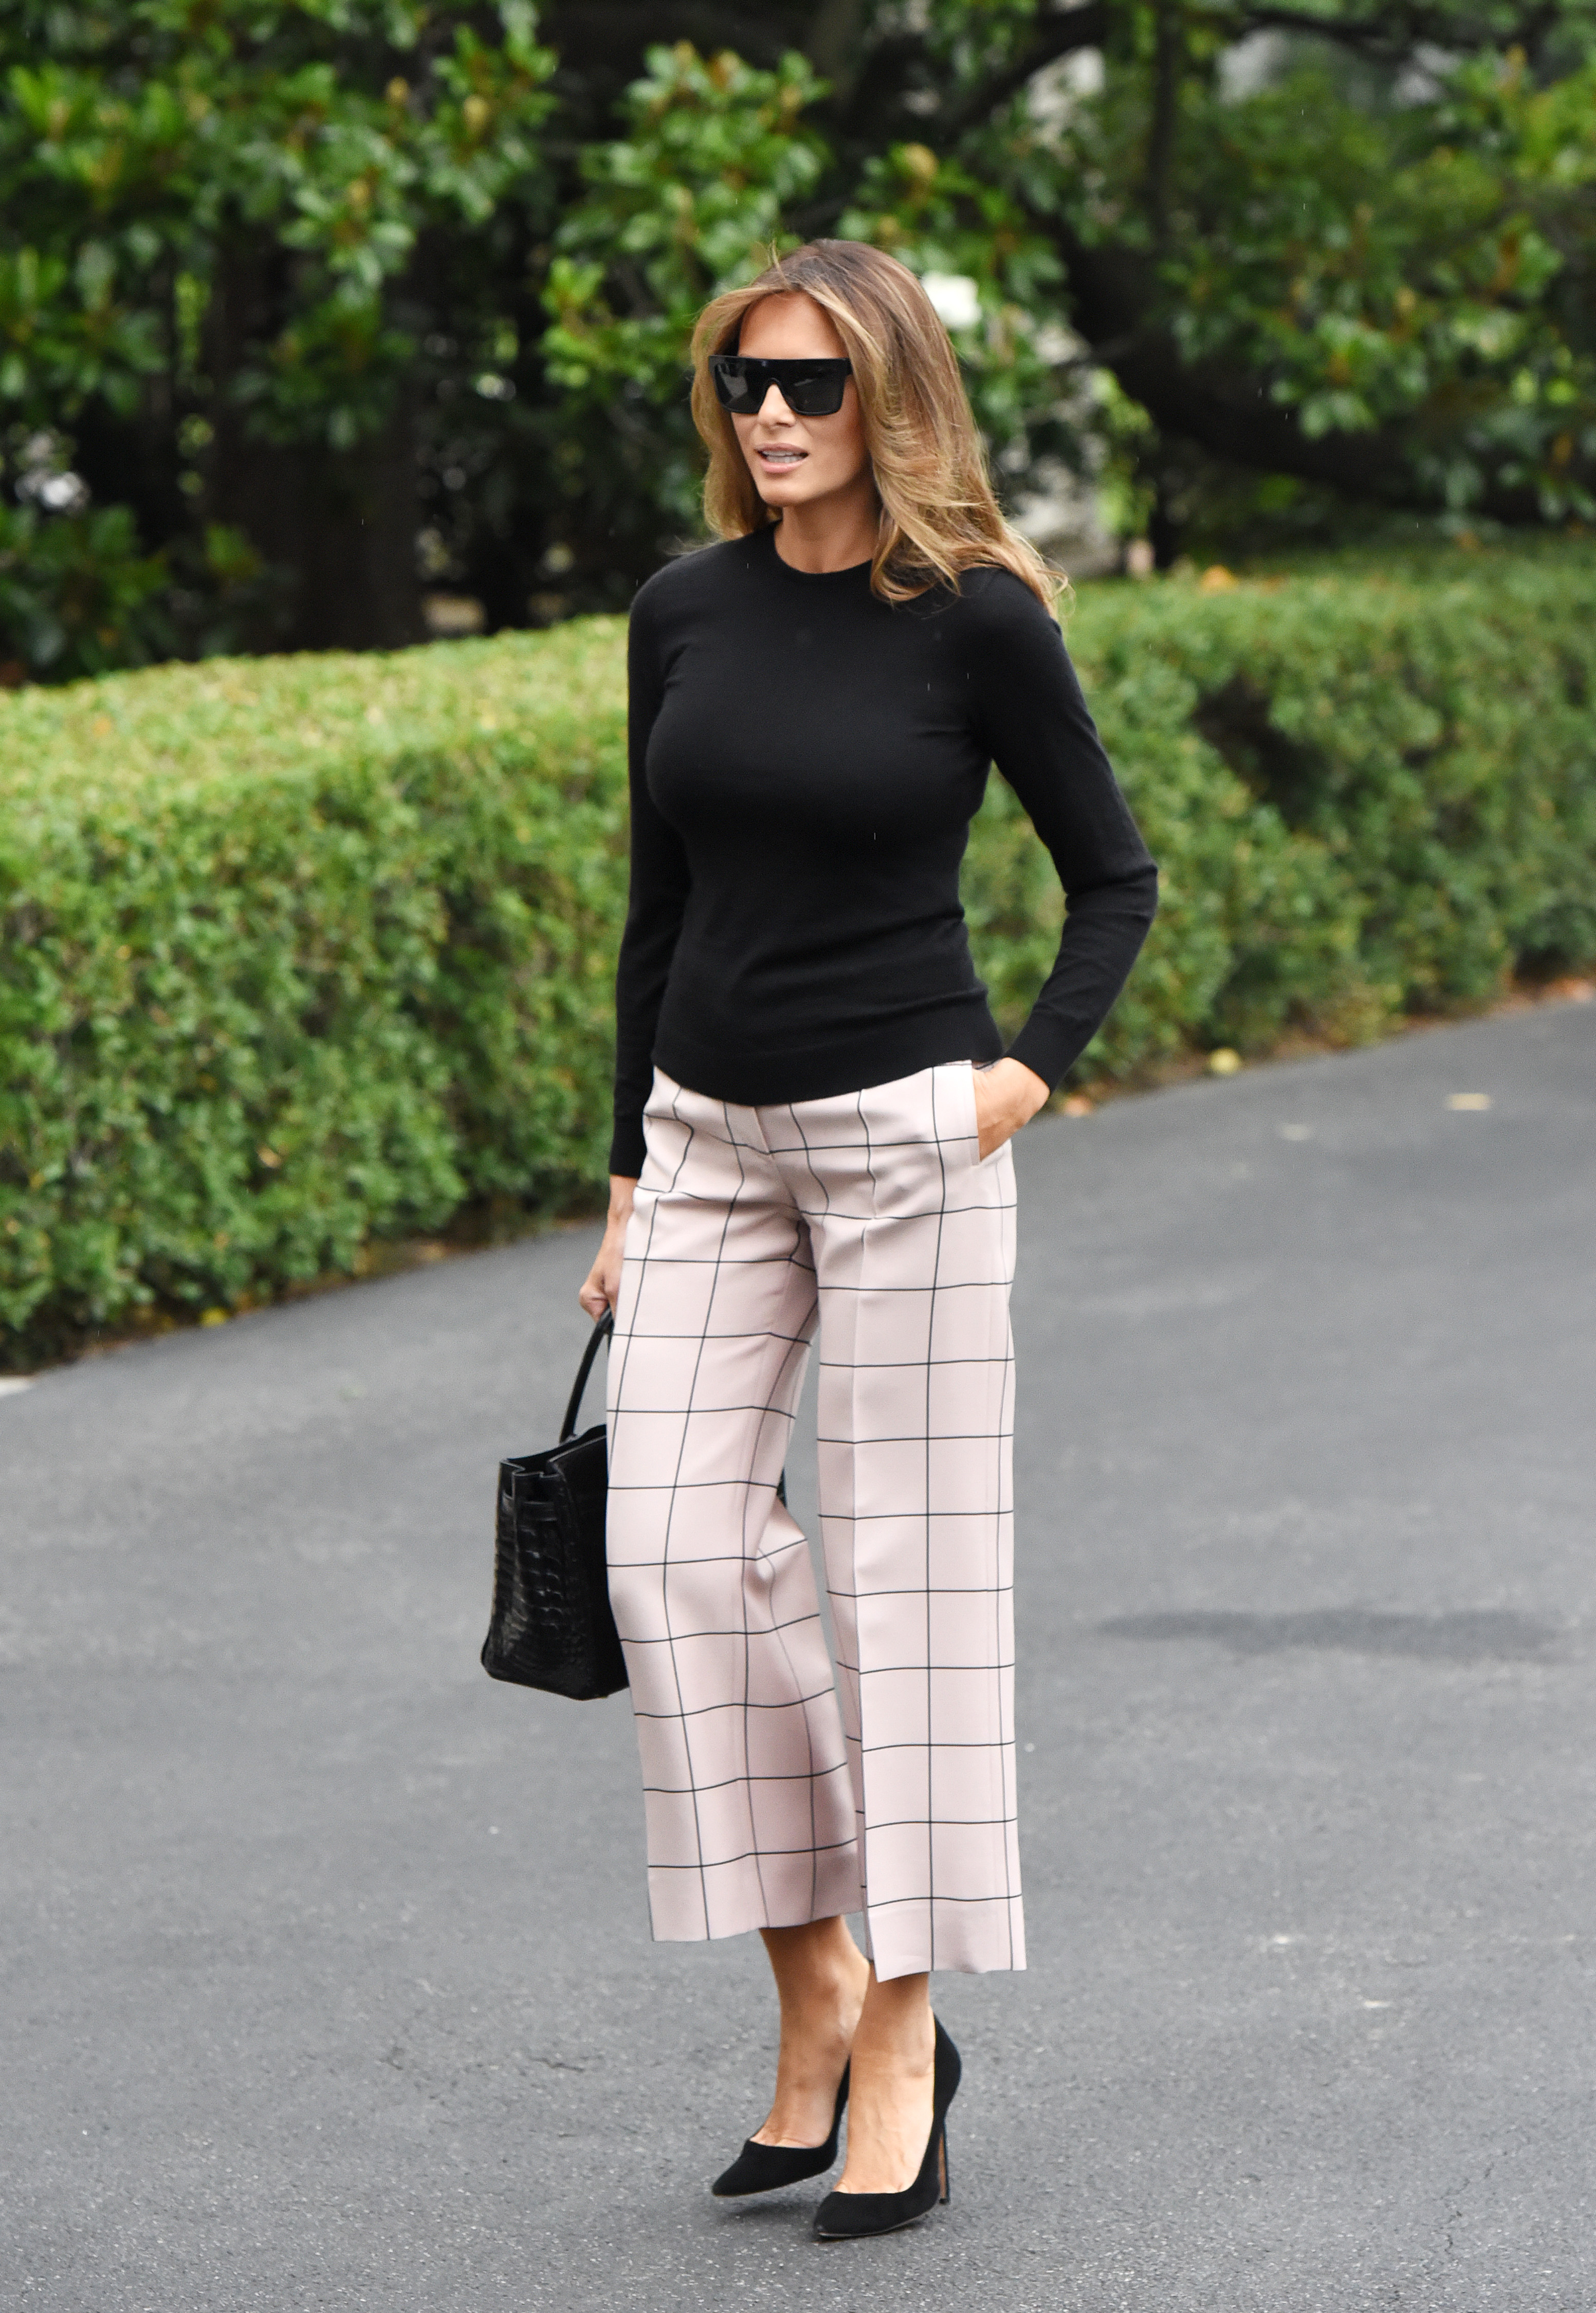 First Lady Melania Trump departs the White House in Washington, DC, on July 5, 2017., Image: 340925383, License: Rights-managed, Restrictions: *** World Rights ***, Model Release: no, Credit line: Profimedia, SIPA USA